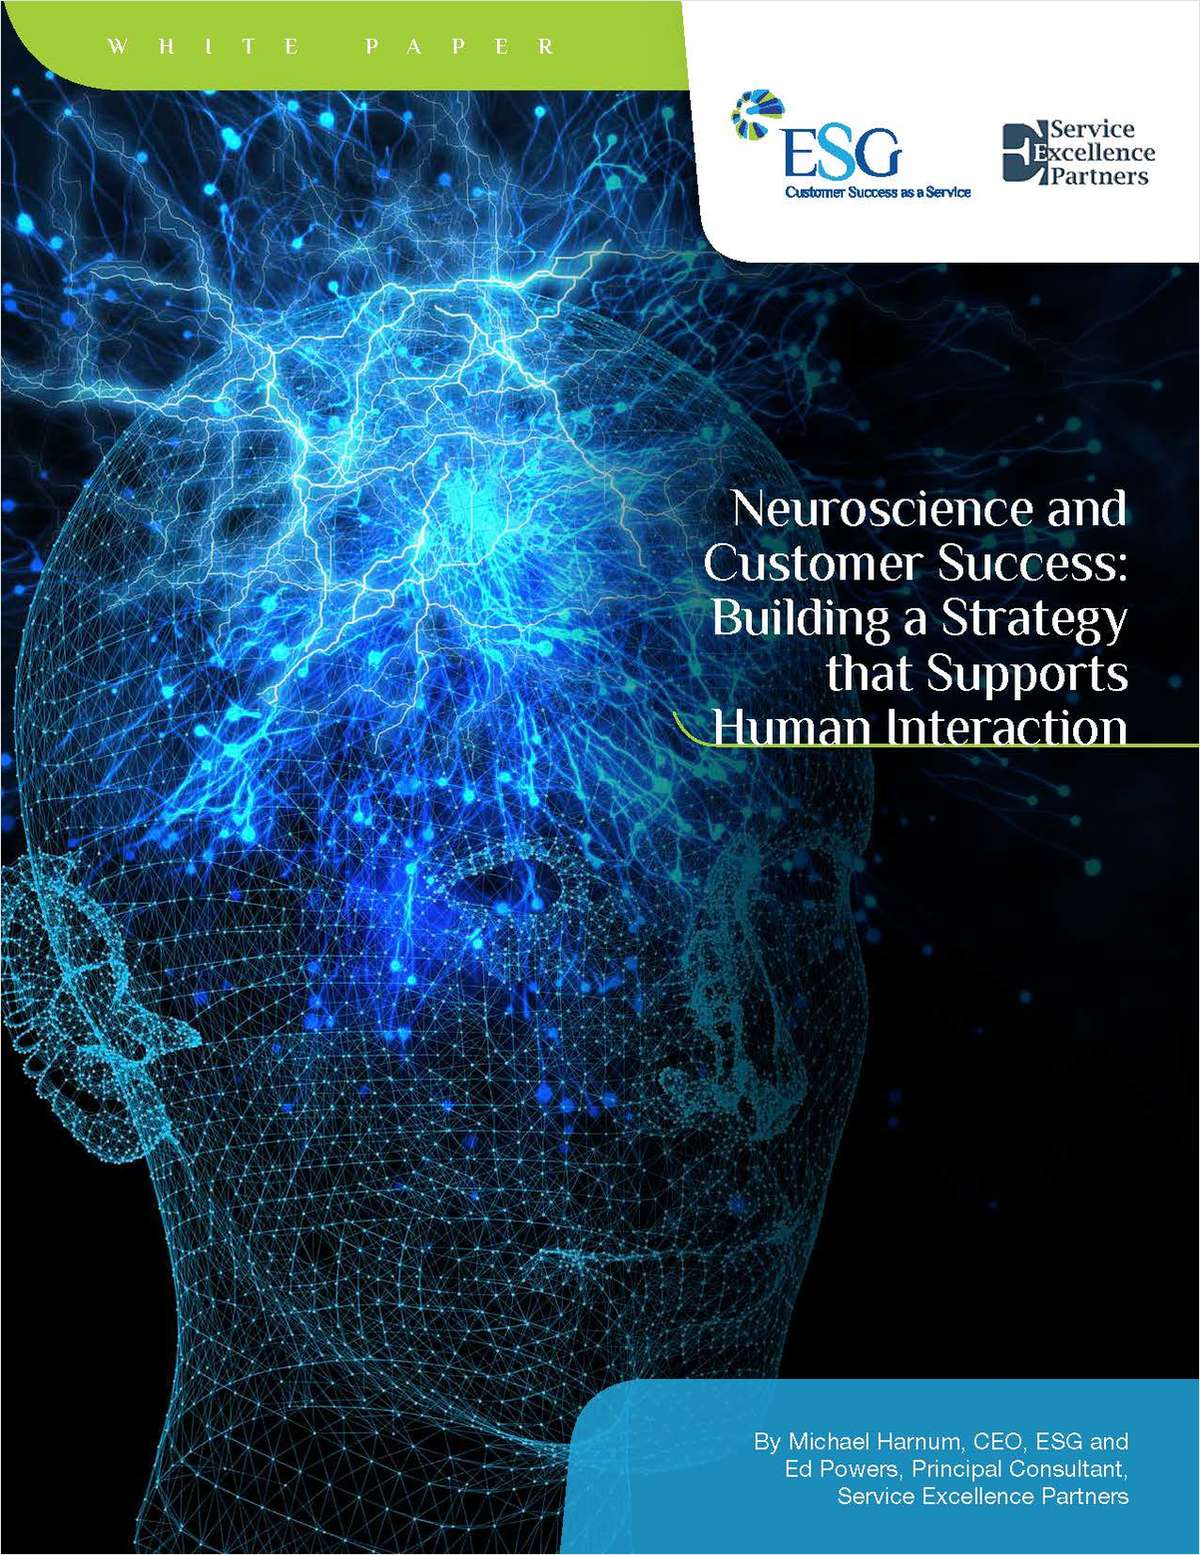 Neuroscience and Customer Success: Building a Strategy that Supports Human Interaction